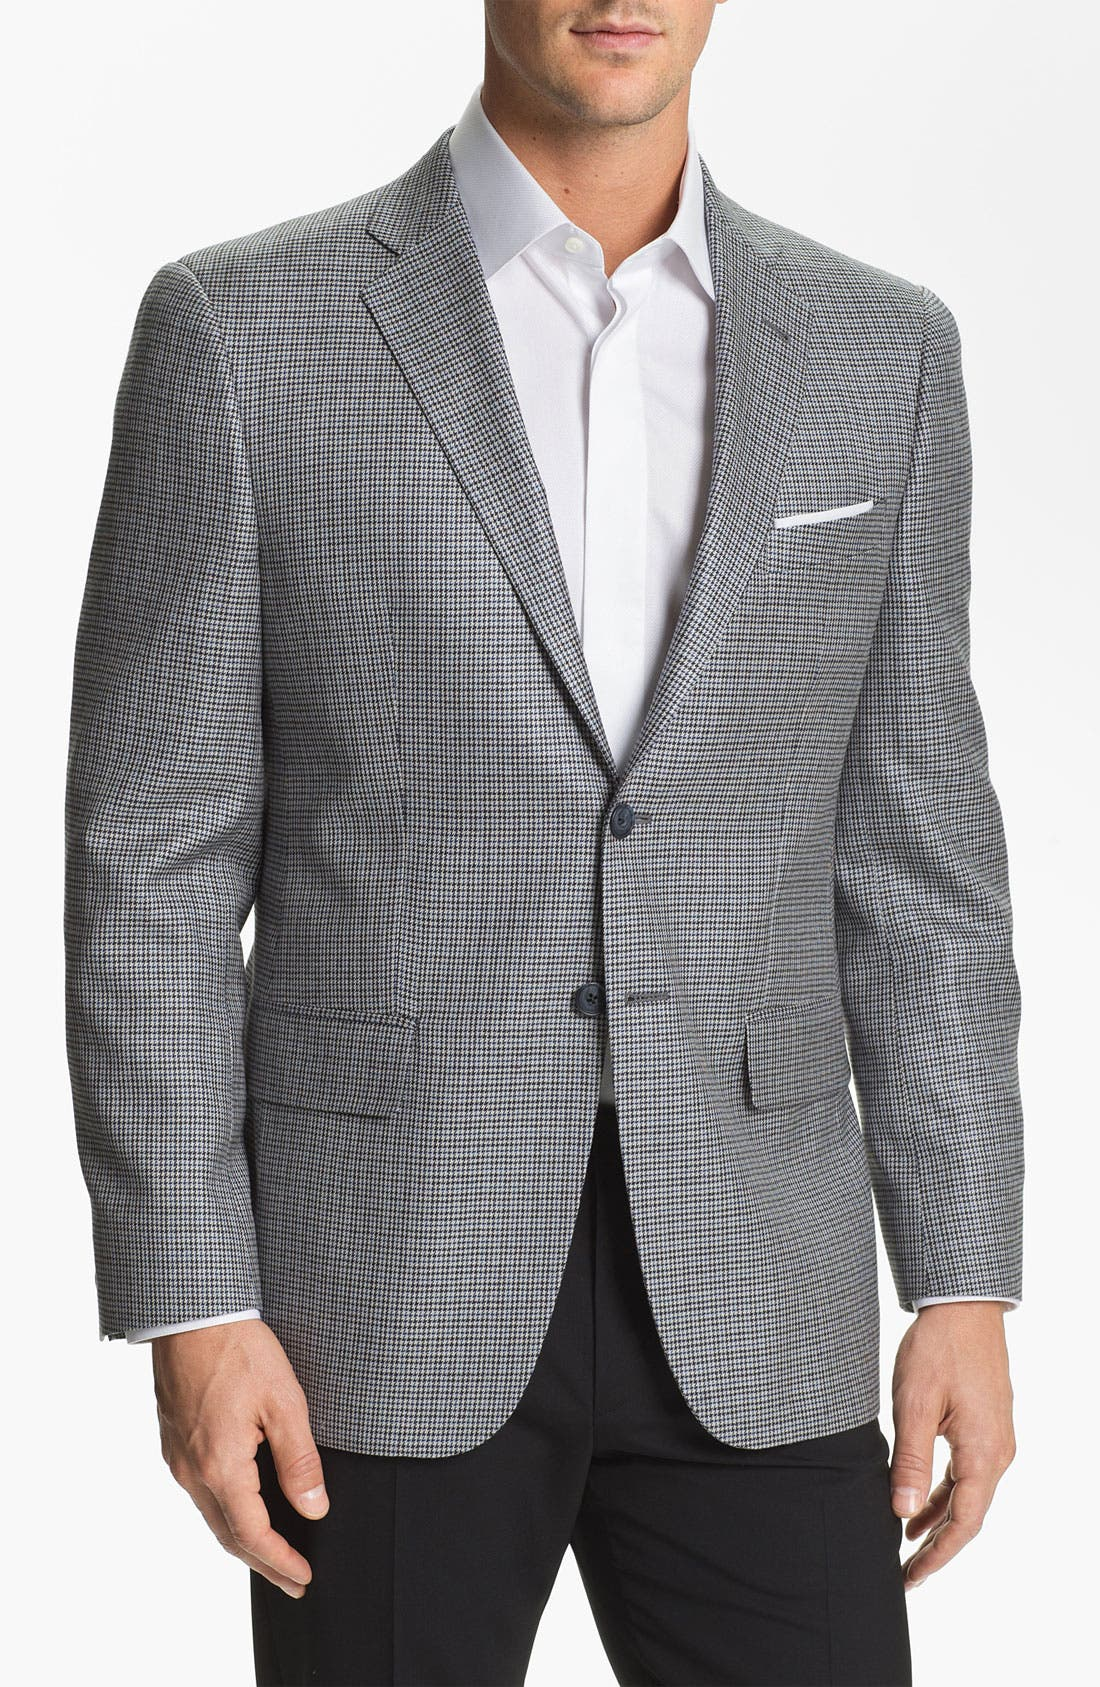 Alternate Image 1 Selected - Joseph Abboud 'Profile' Trim Fit Check Sportcoat